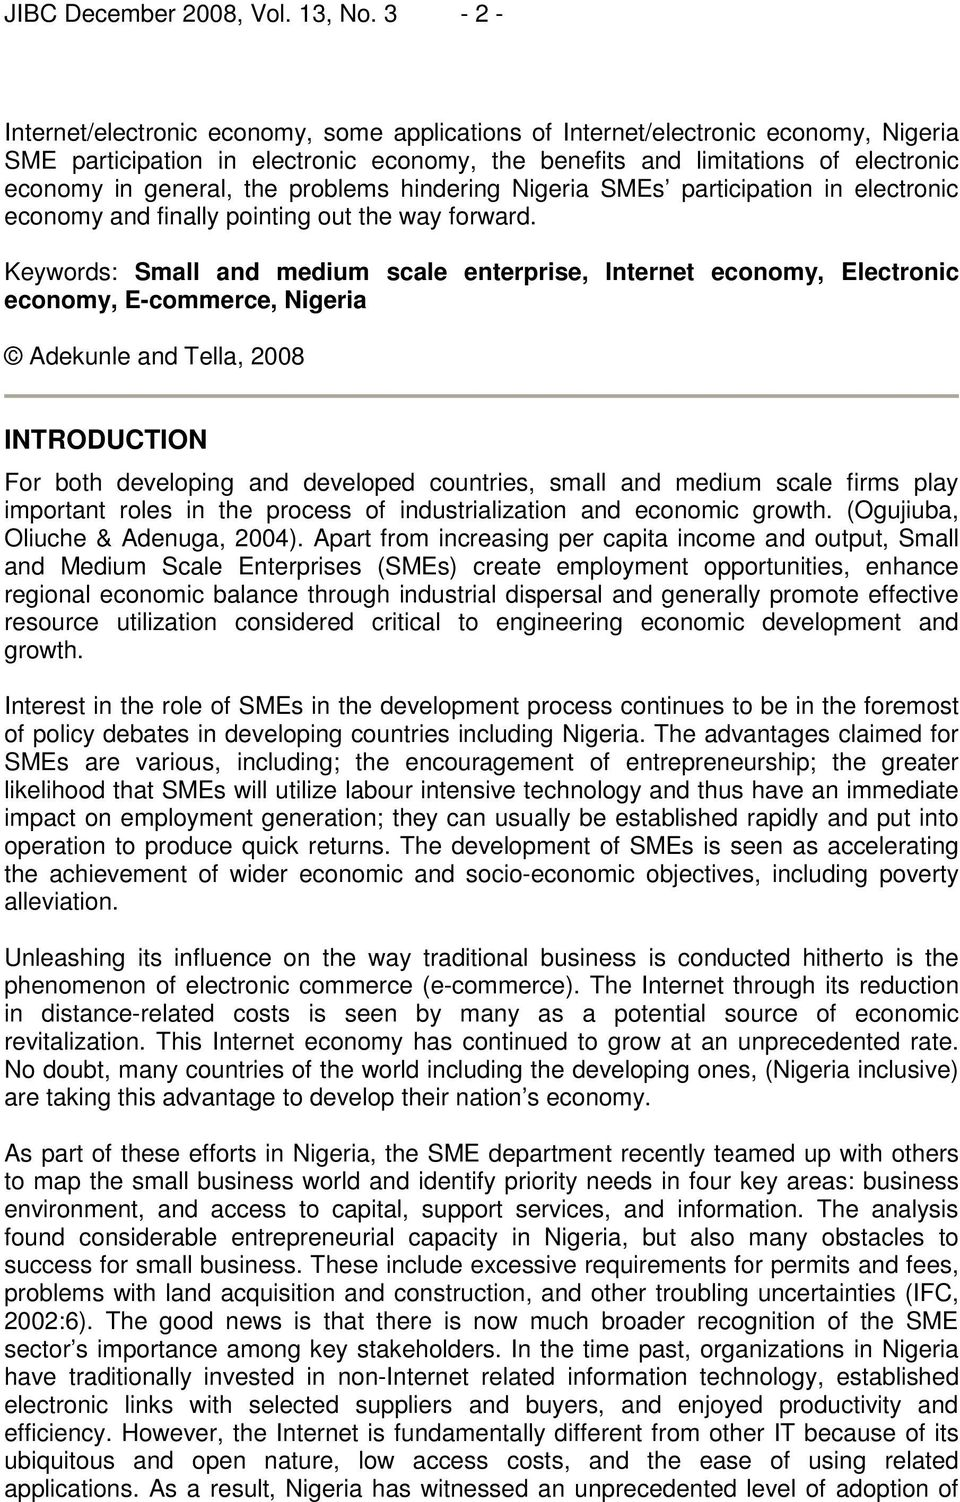 the problems hindering Nigeria SMEs participation in electronic economy and finally pointing out the way forward.